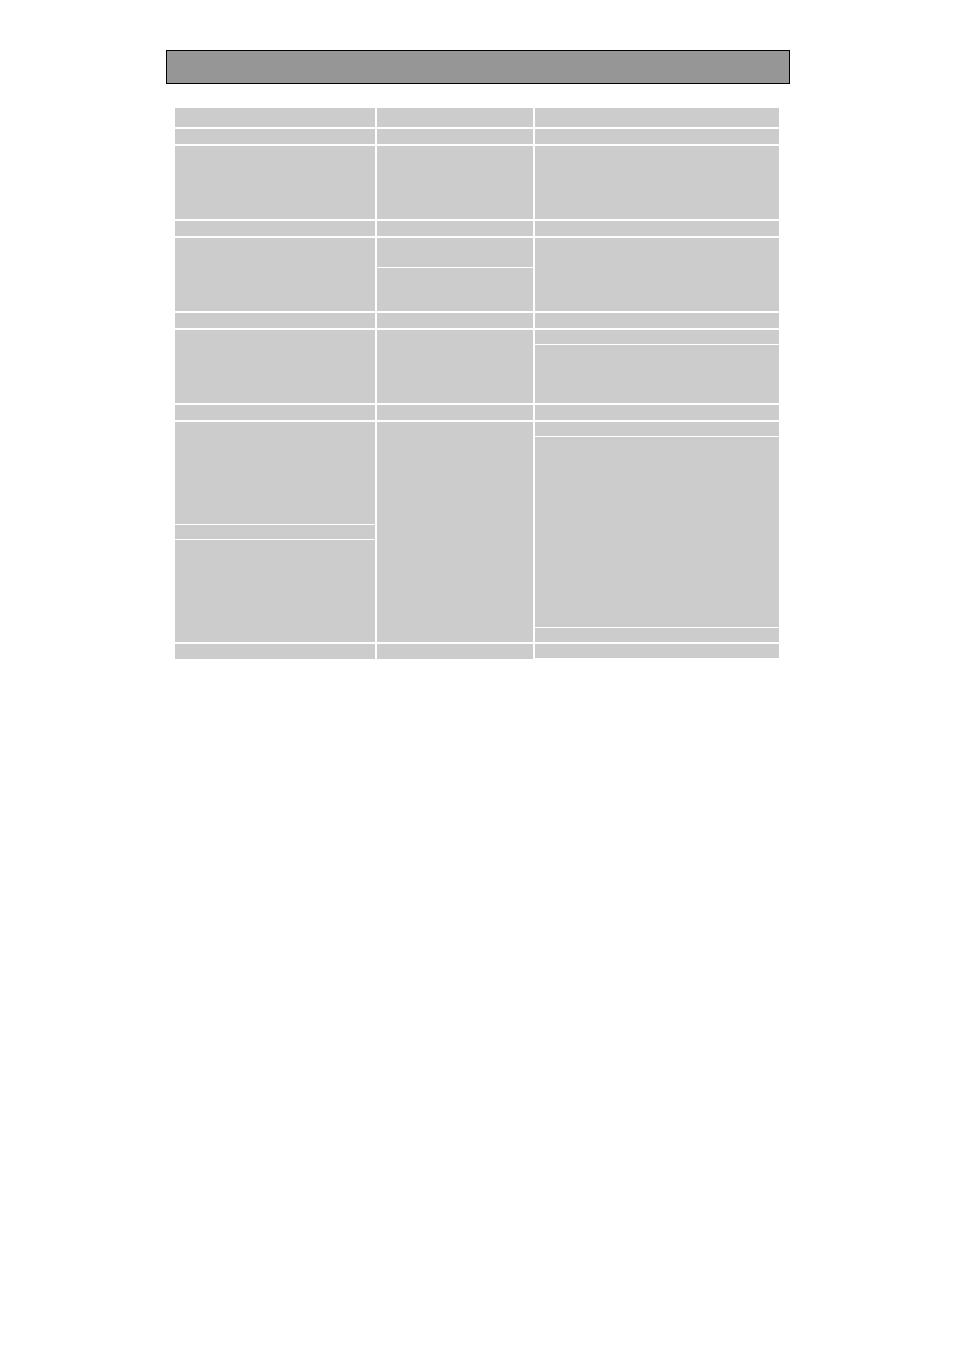 auto defrost programmes chart electrolux ems2840 user manual rh manualsdir com